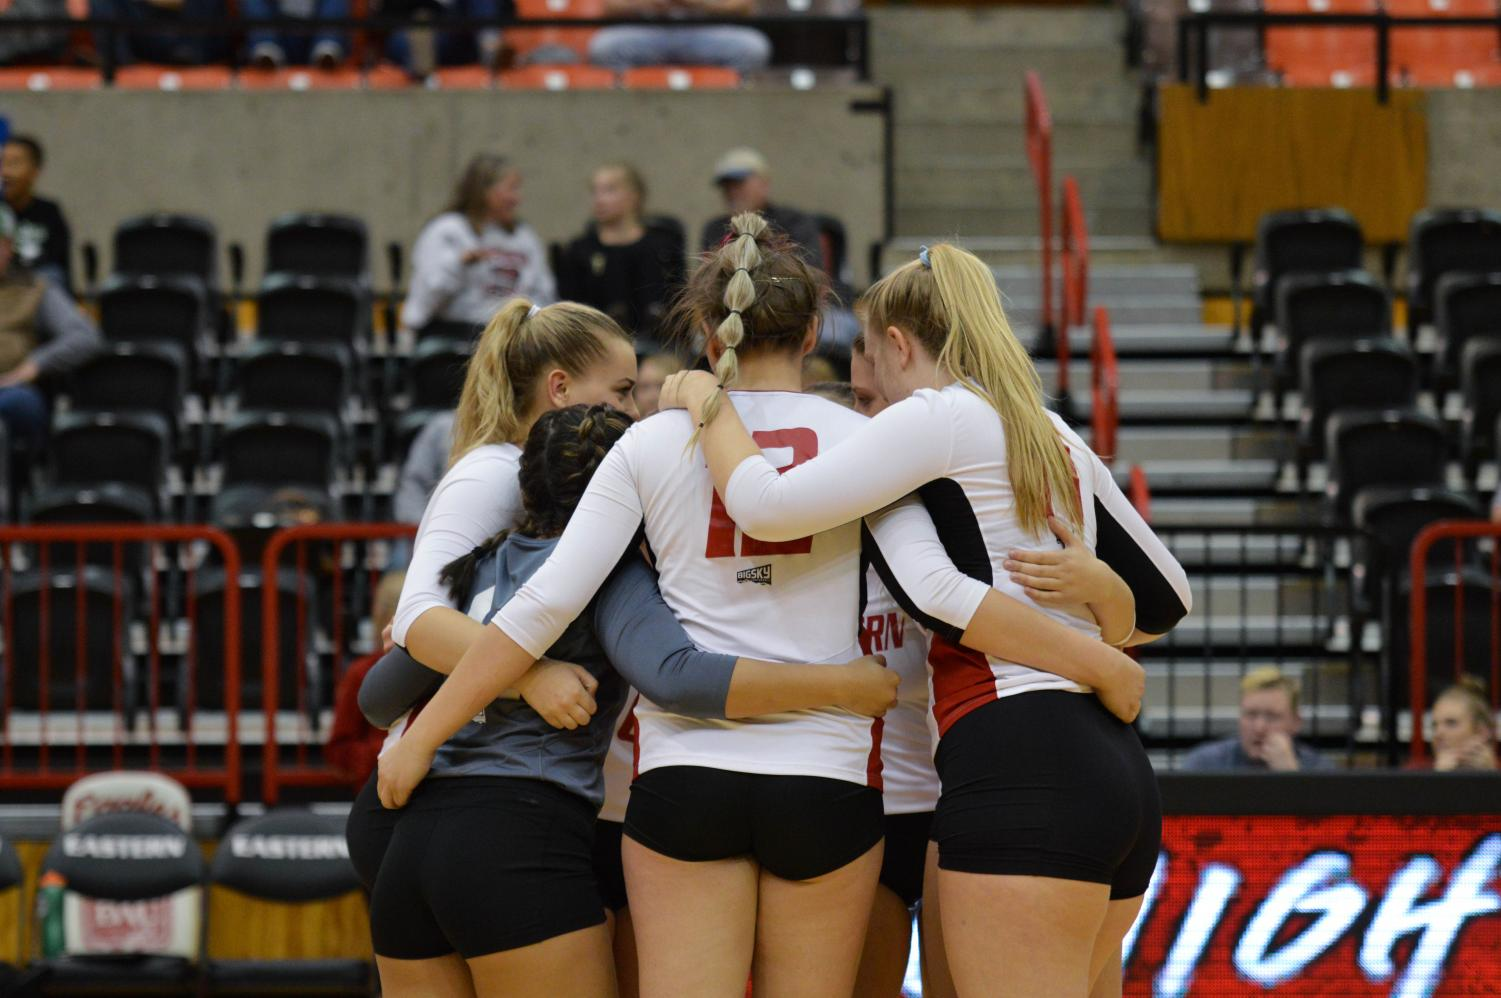 The Eagles huddle up after a point. EWU lost three straight sets after winning the first to lose to Northern Colorado on Oct. 20.